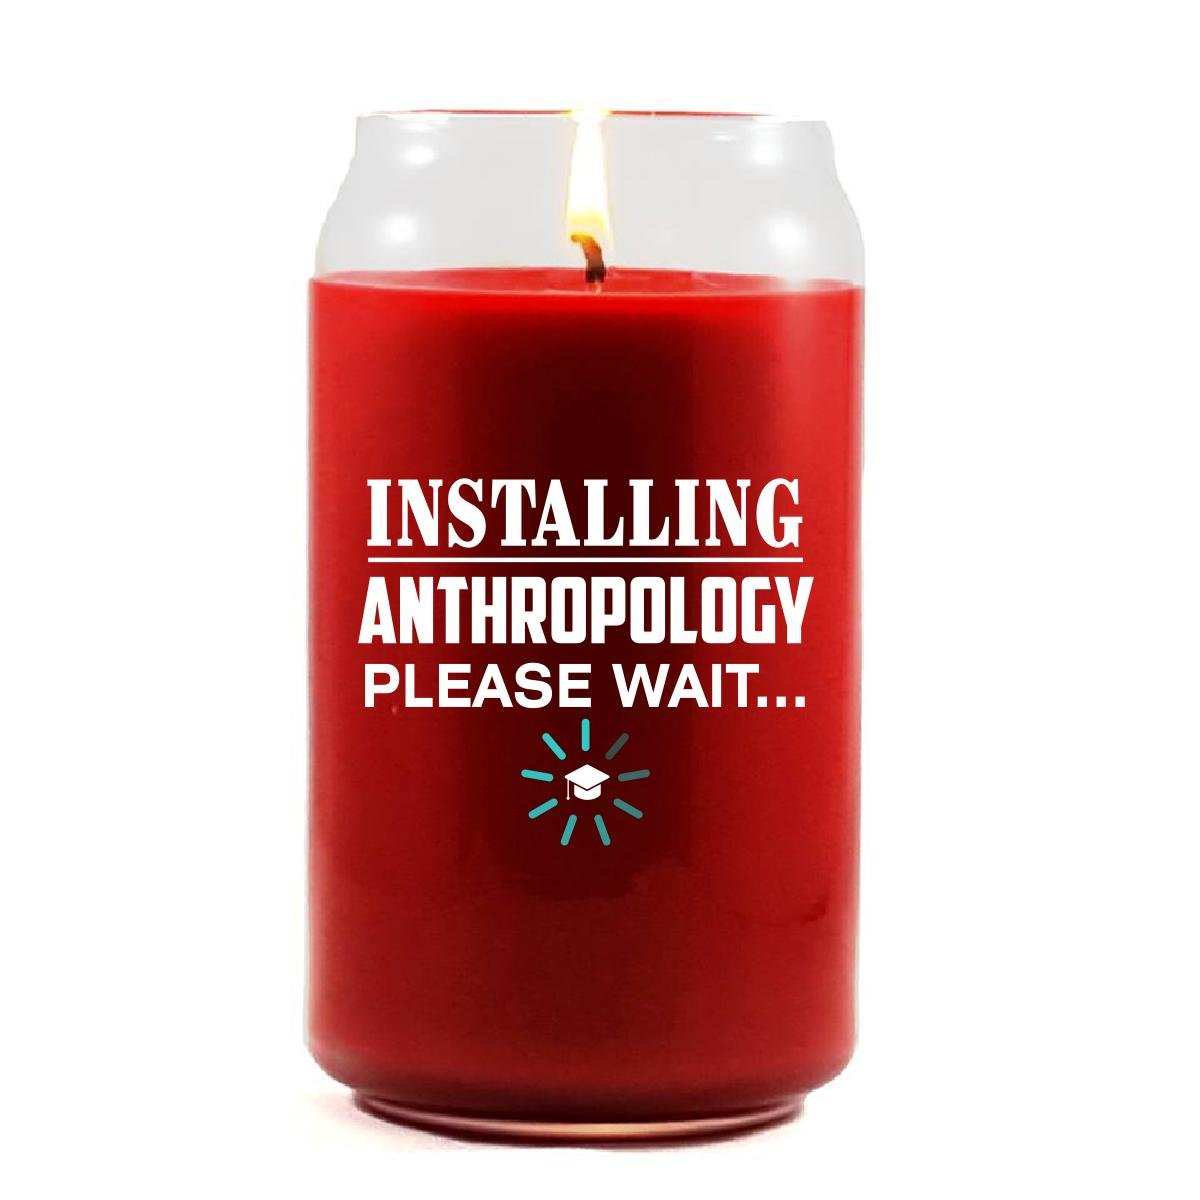 Installing ANTHROPOLOGY Please Wait College Degree - Scented Candle